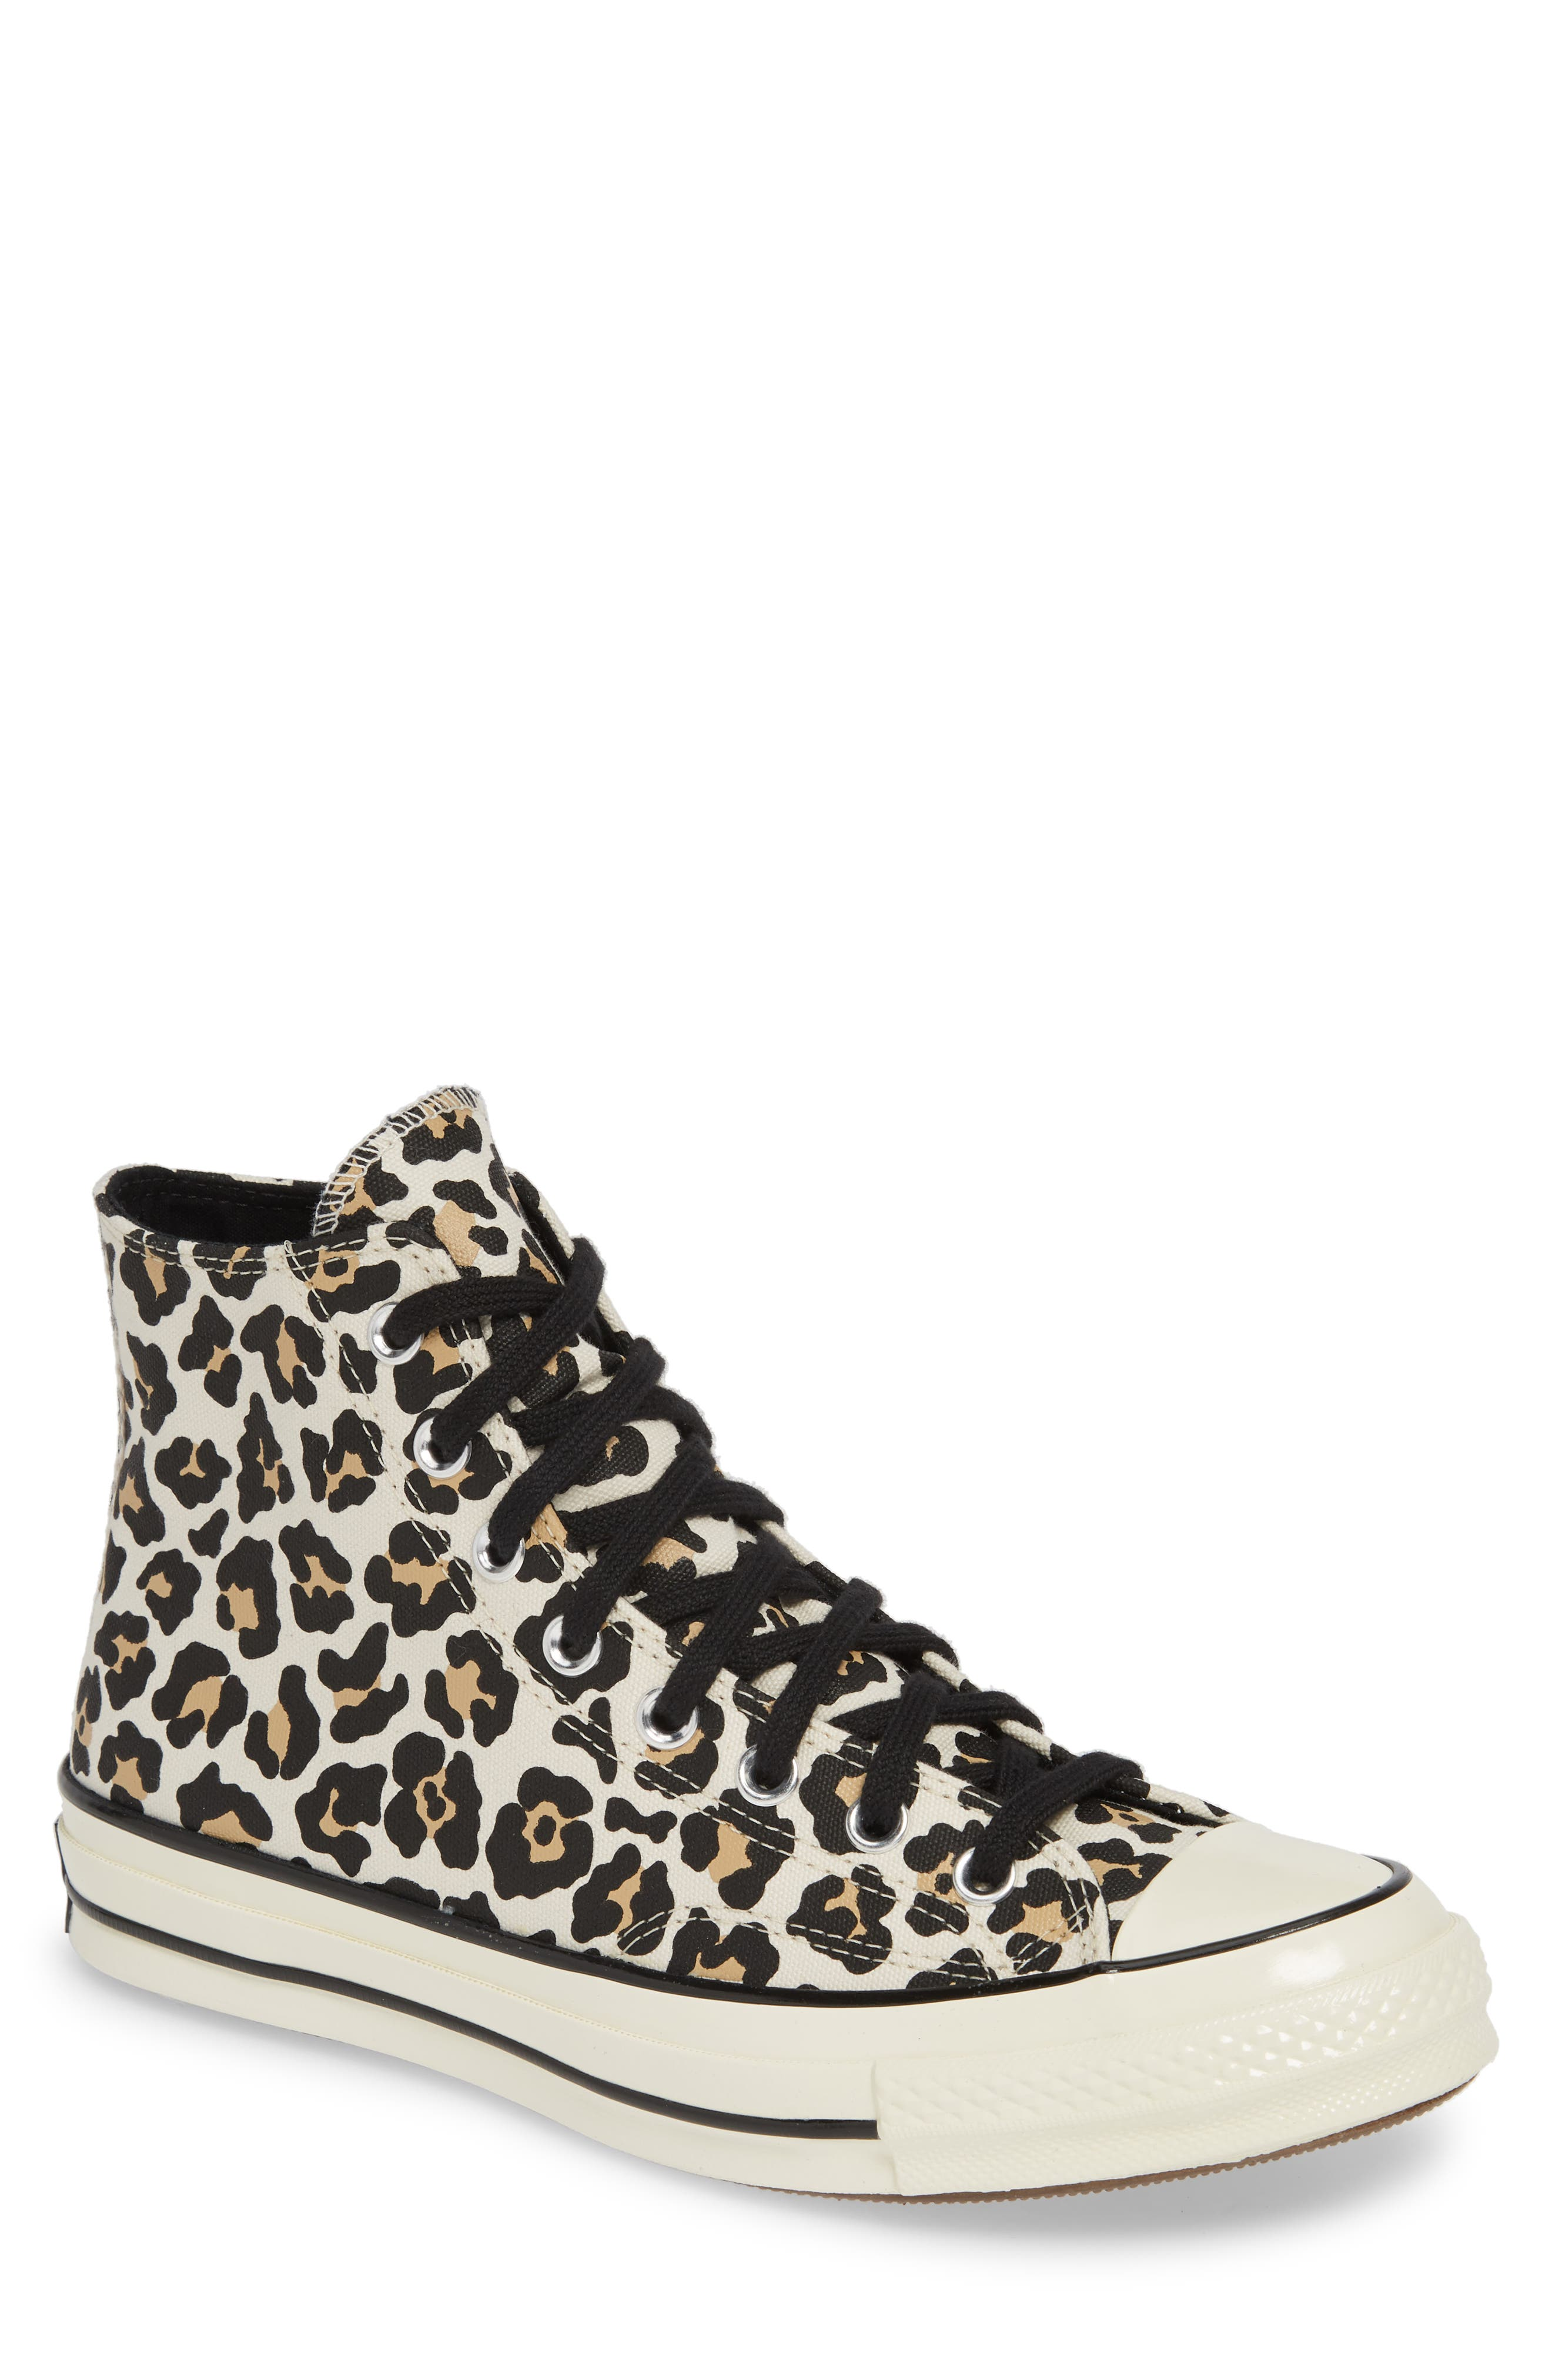 CONVERSE Chuck Taylor<sup>®</sup> All Star<sup>®</sup> 70 High Top Sneaker, Main, color, DRIFTWOOD/ LIGHT FAWN